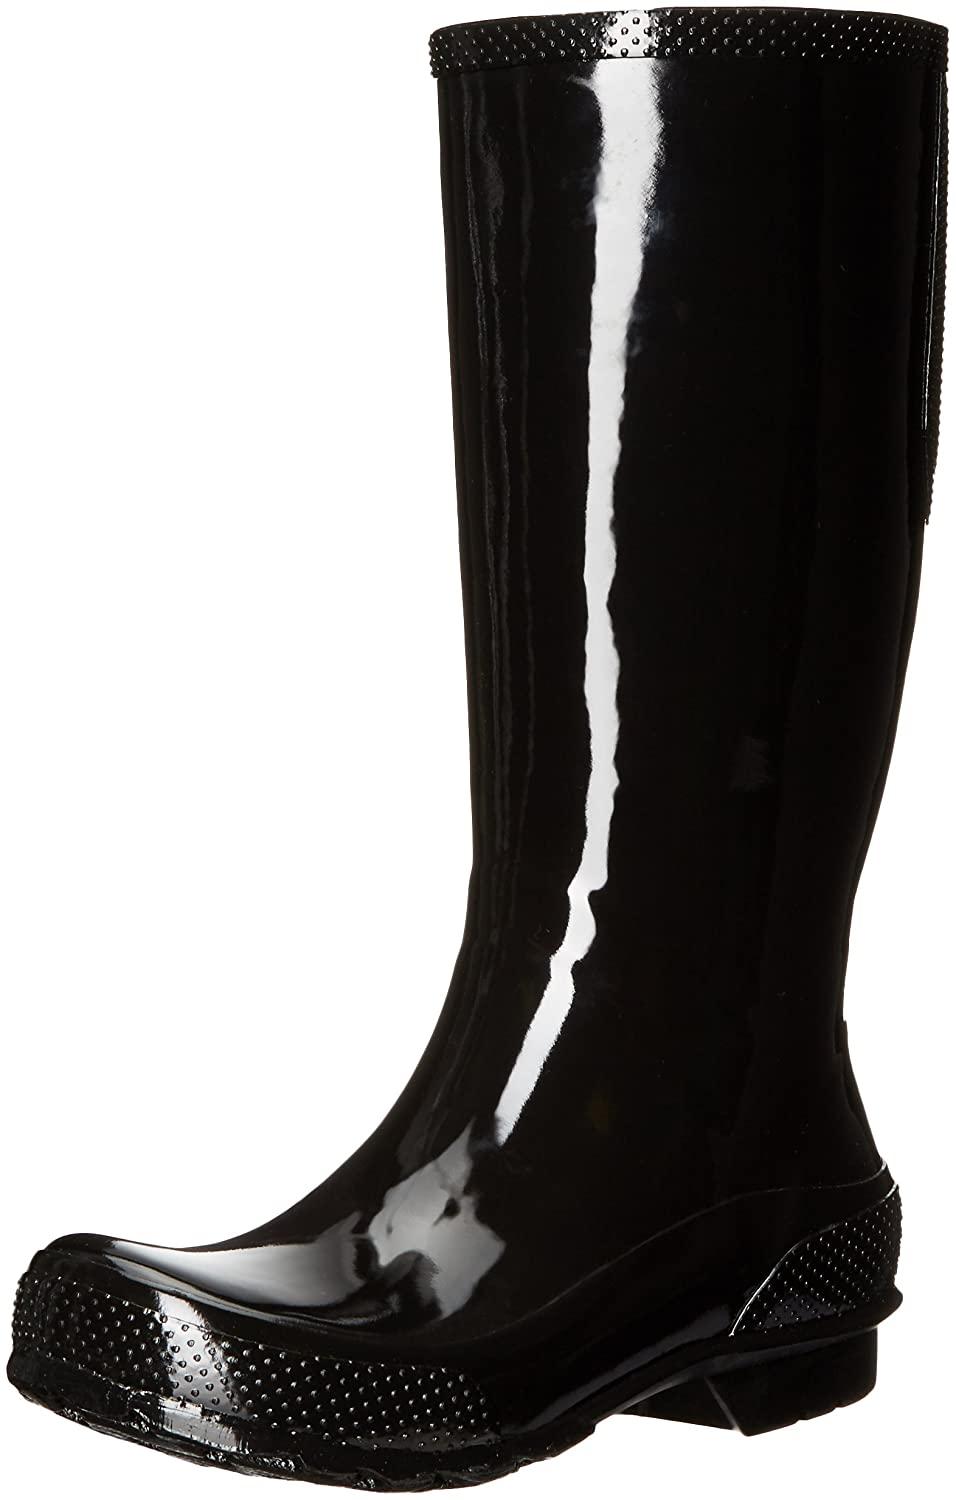 Crocs Women's Tall W Rain Boot B01HBWEYU6 7 US/7 M US M US|Black/Black